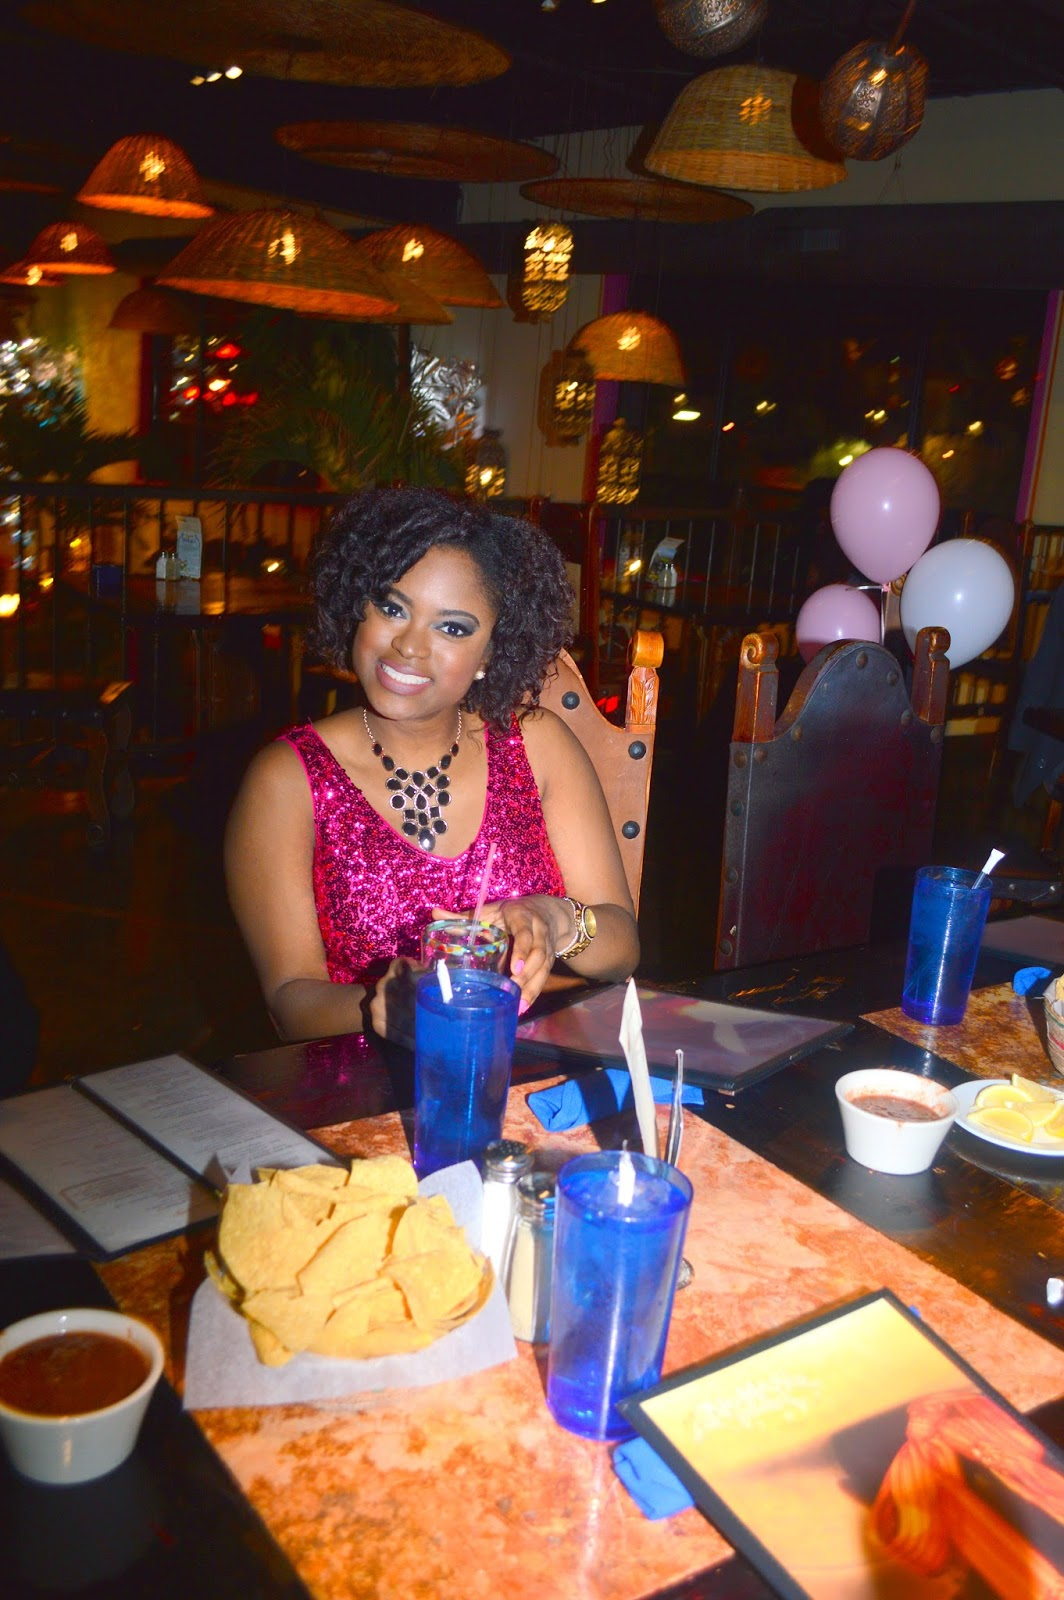 Hacienda Cantina In The Castleberry Hill District Of Atlanta I Knew Wanted To Have My Birthday Dinner